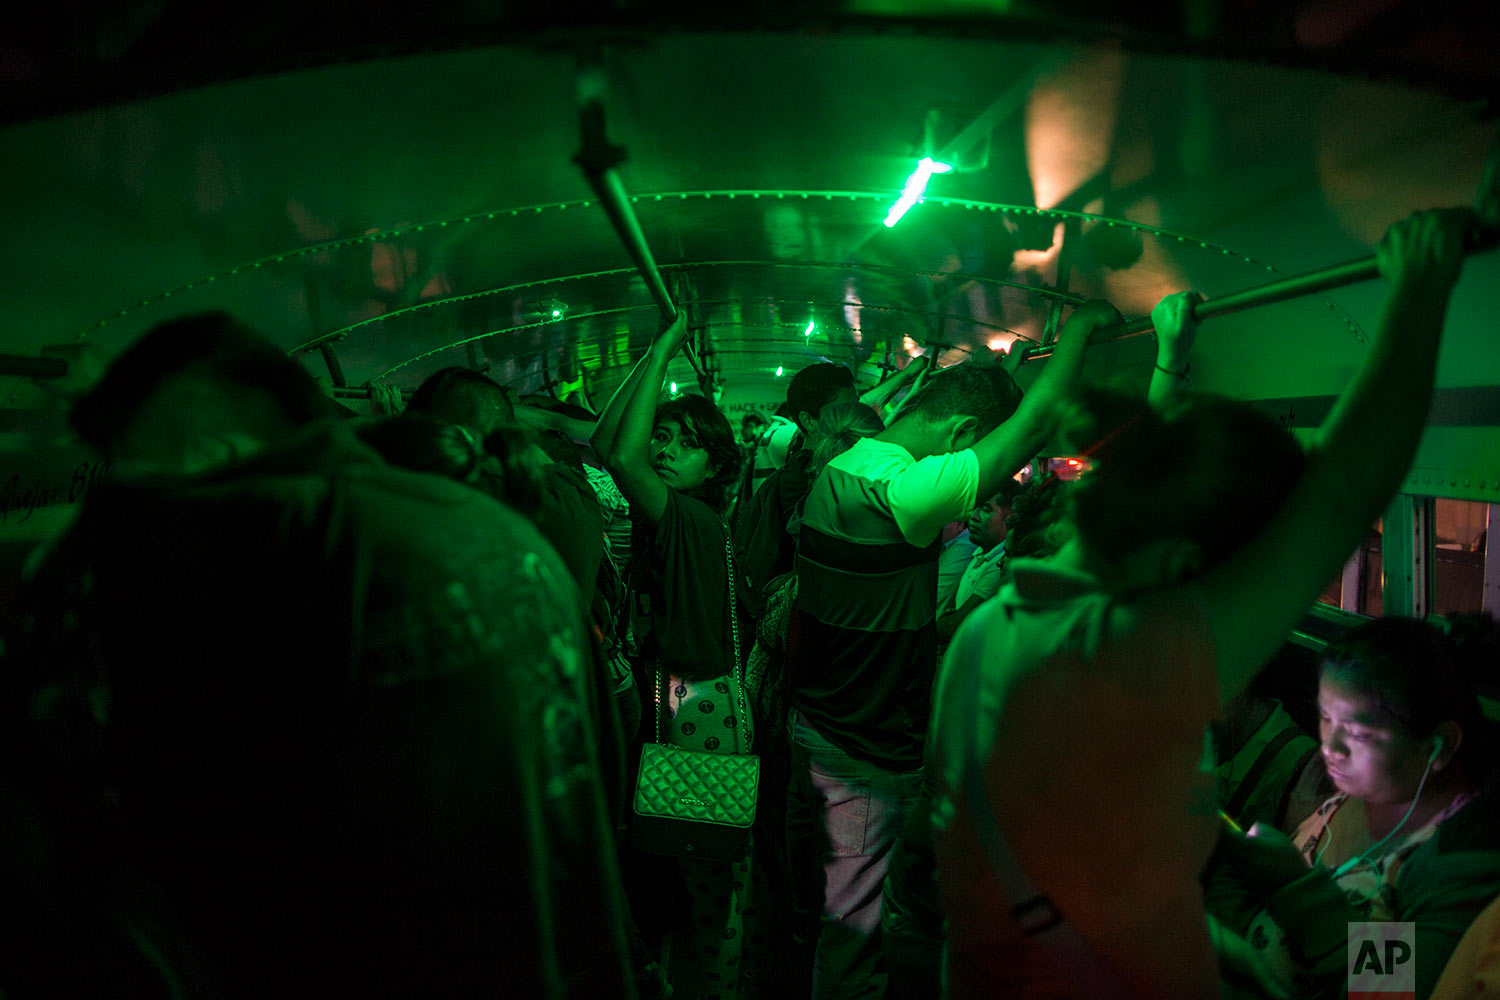 """People stand in a bus waiting to go home after their work day at a """"maquiladora"""" for car accessories in Matamoros, Tamaulipas state, Mexico, across the border from Brownsville, Texas, Tuesday, March 21, 2017. (AP Photo/Rodrigo Abd)"""